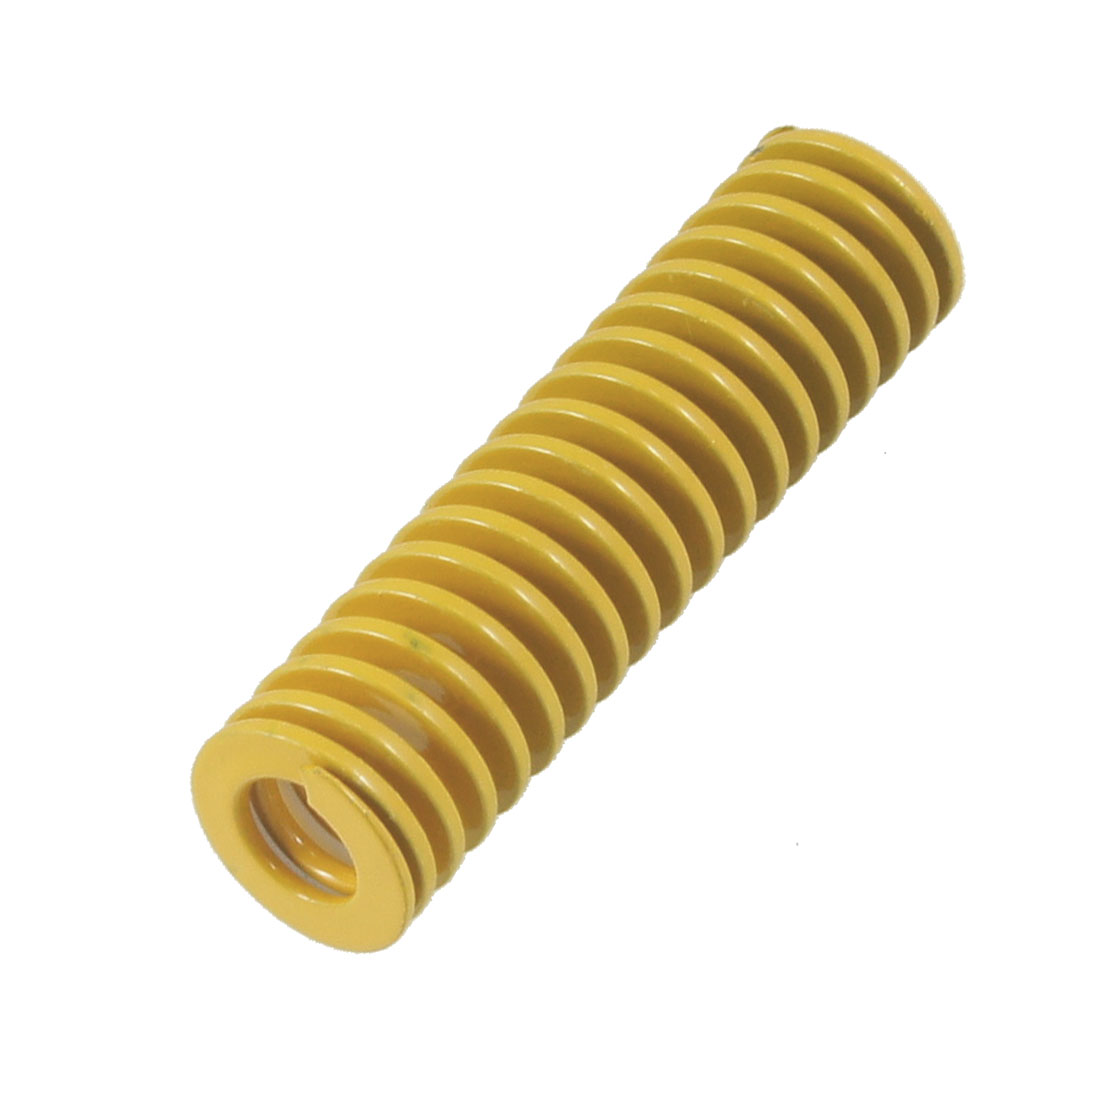 20mm x 11mm x 75mm Spiral Metal Stamping Compression Die Spring